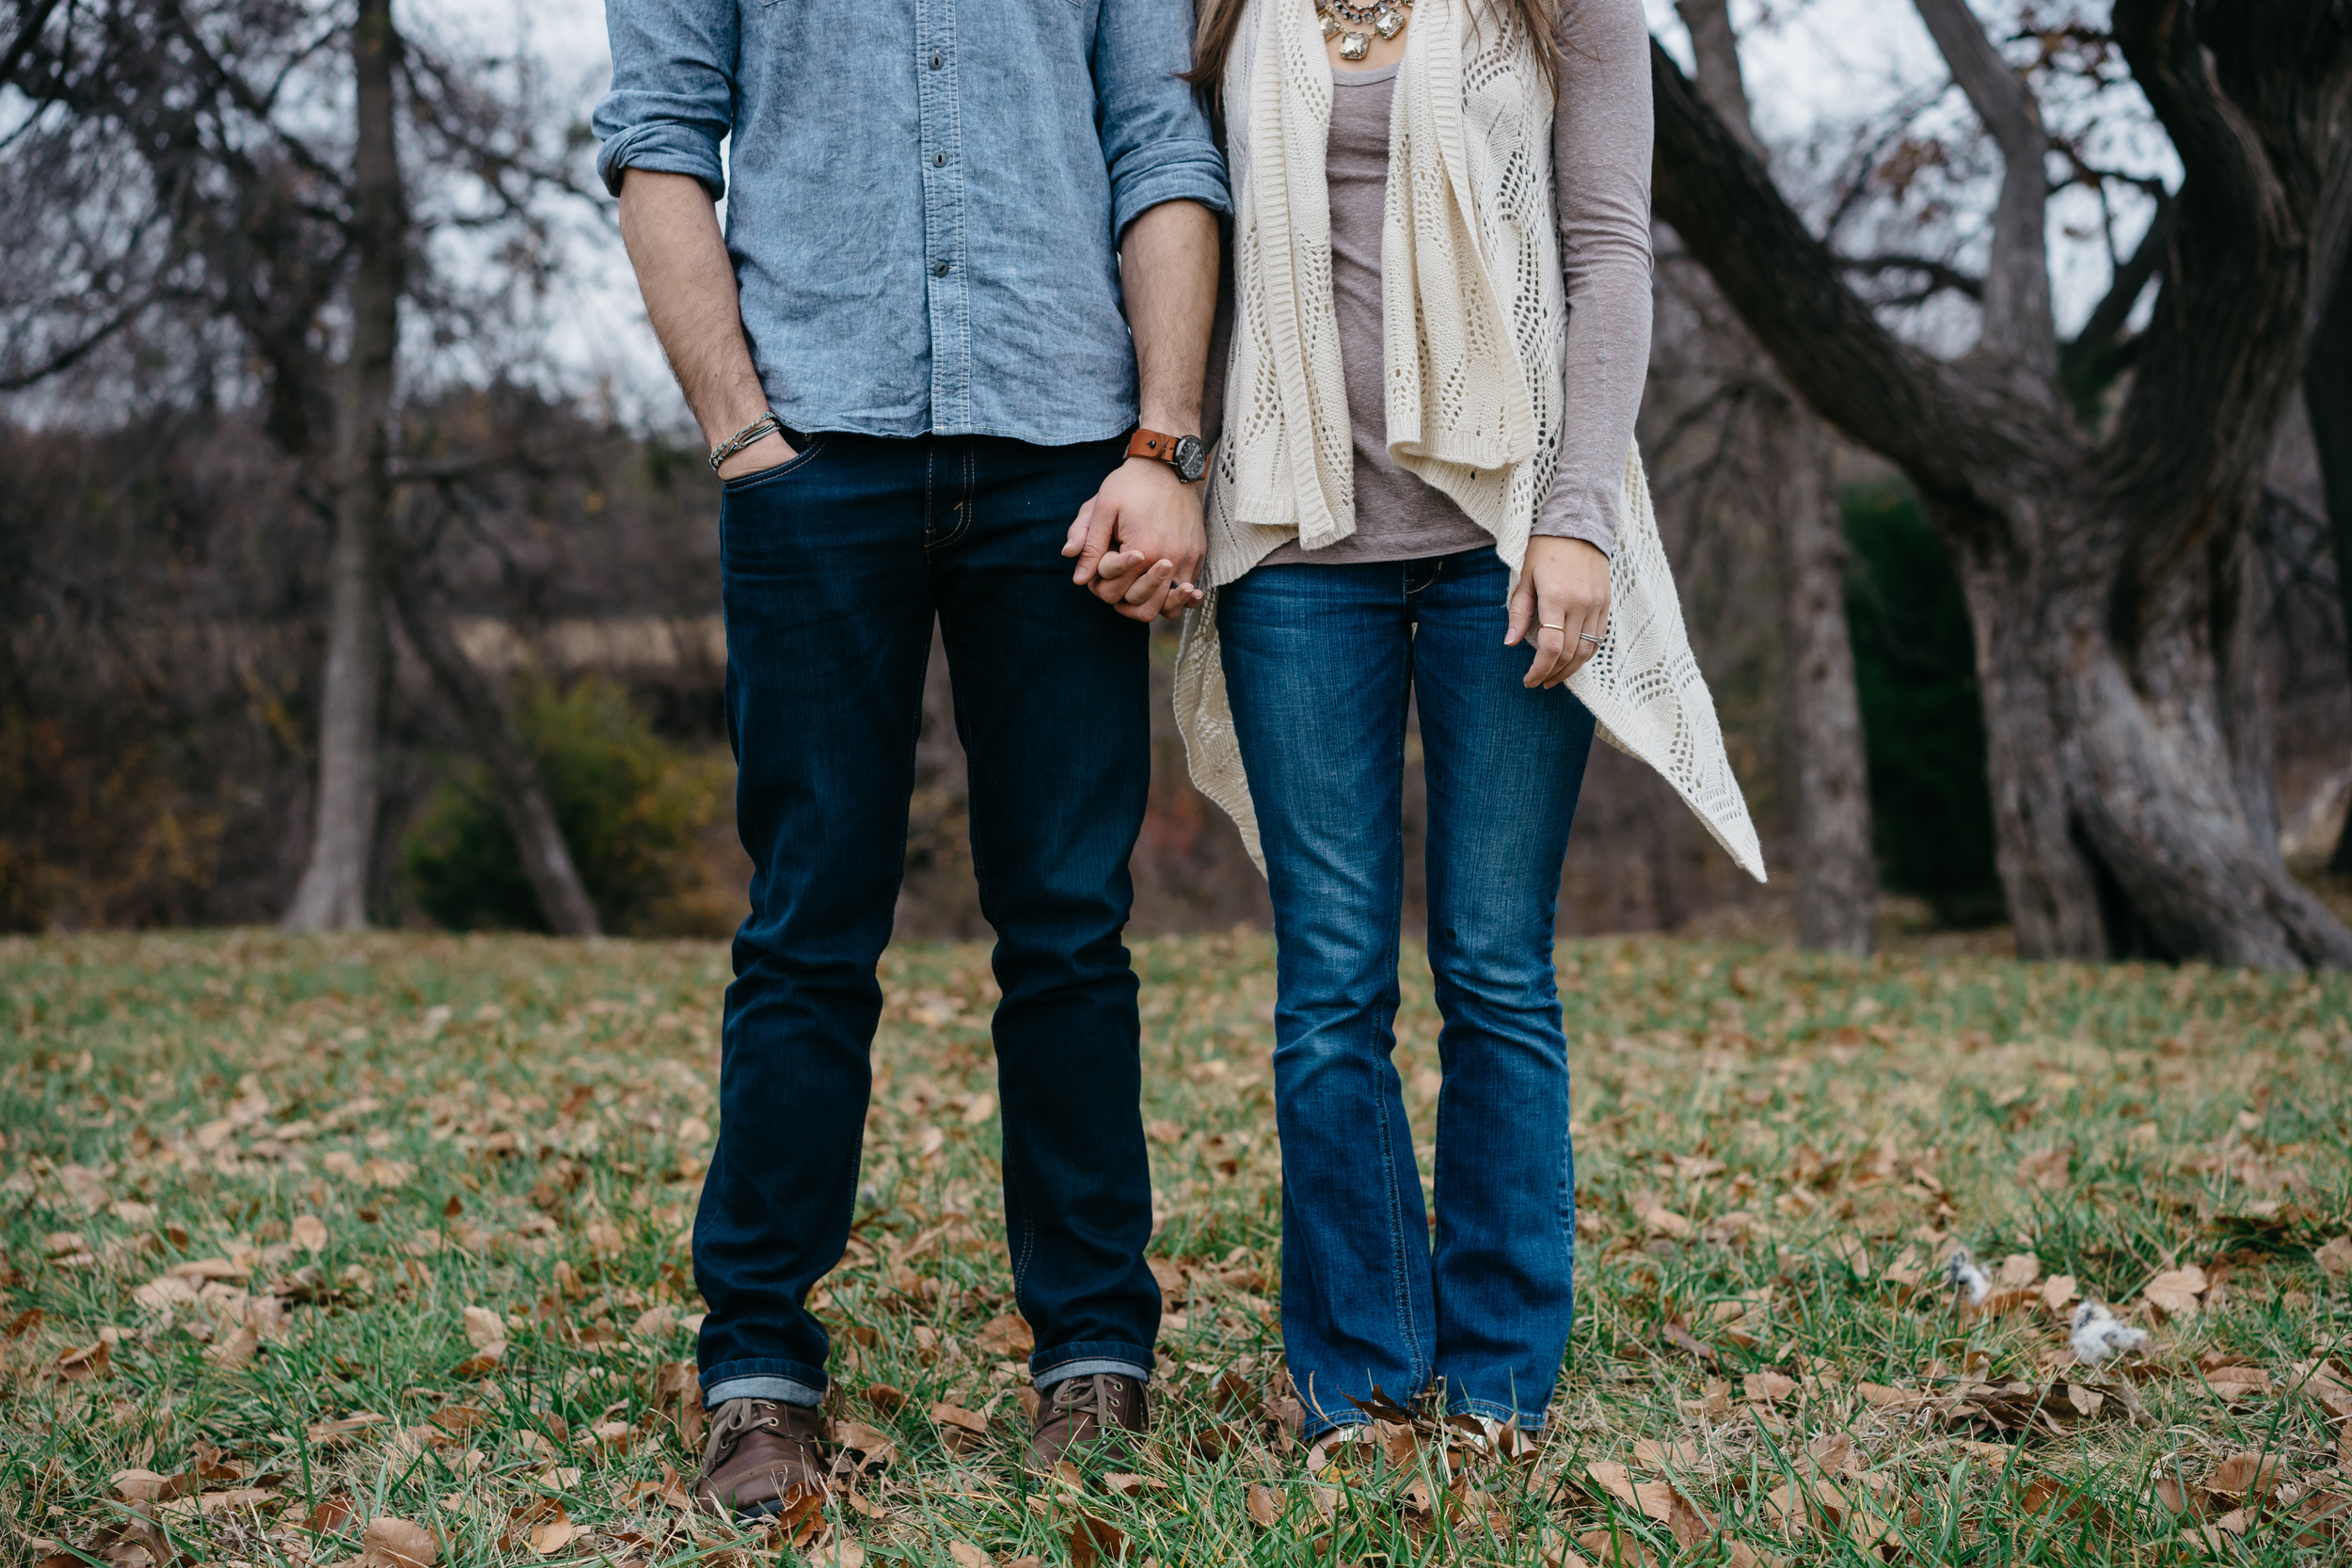 mckinney texas engagement photos